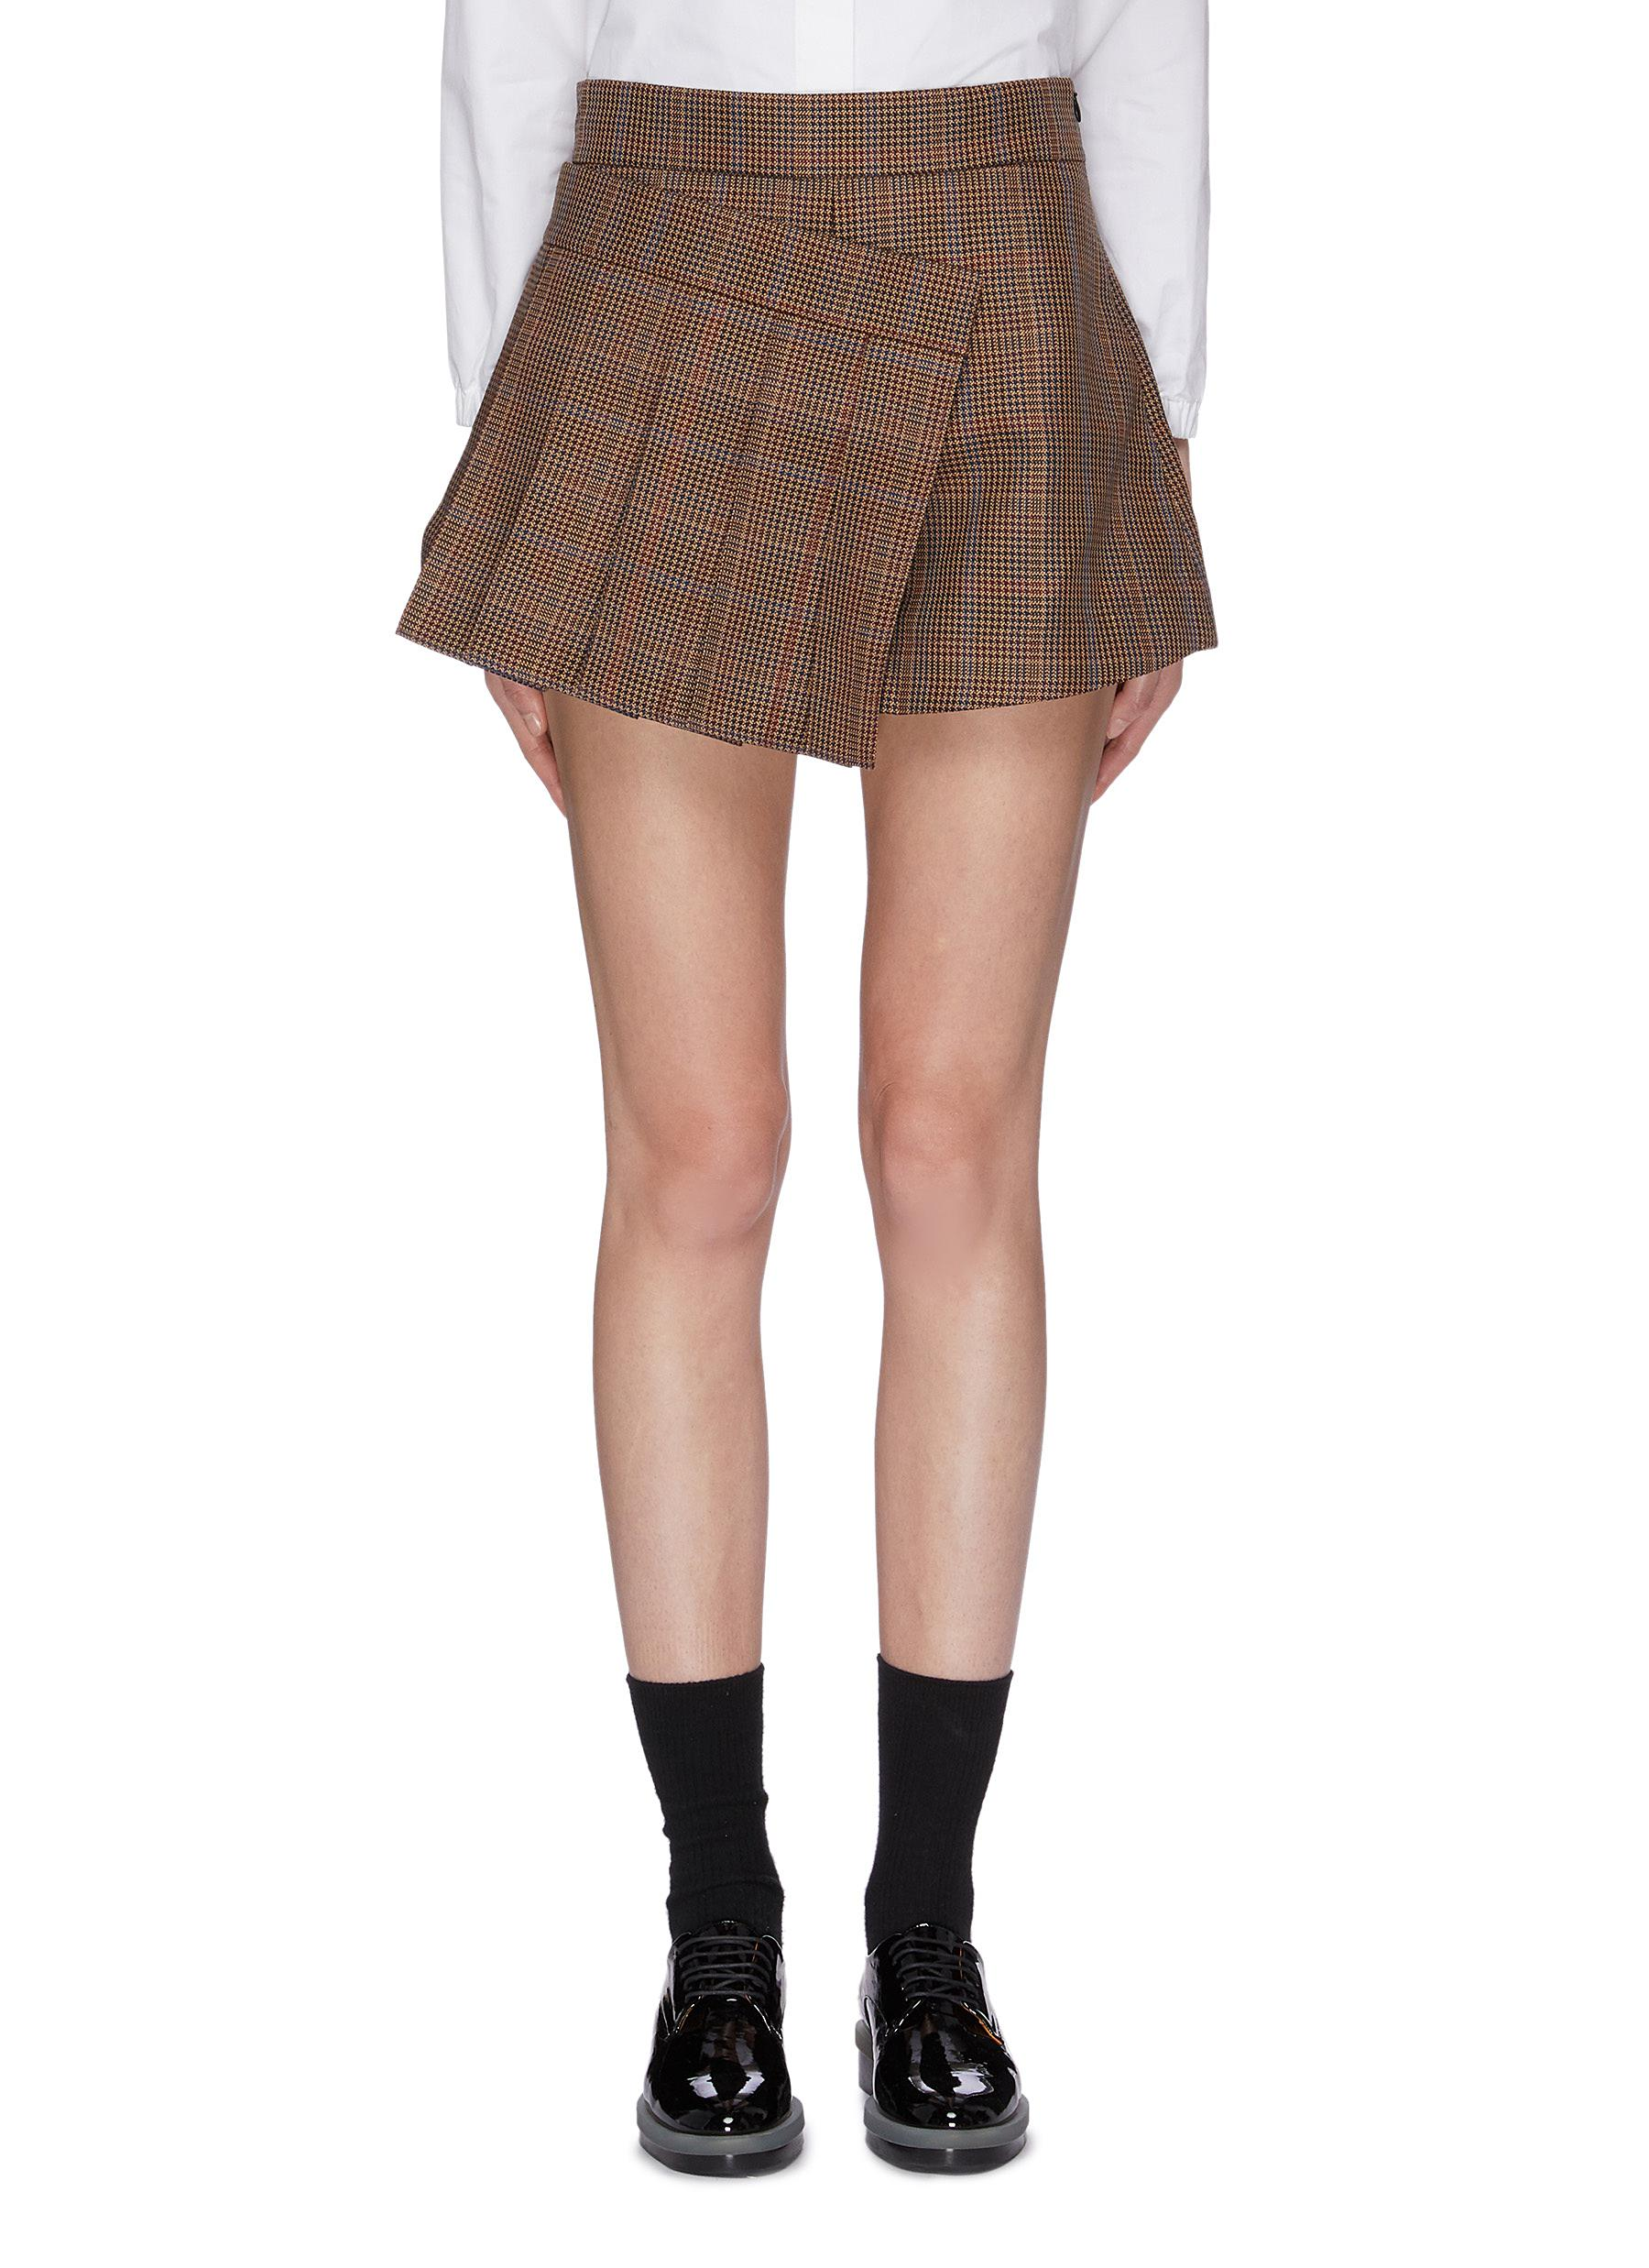 Asymmetric pleated panel houndstooth check plaid skort by Shushu/Tong